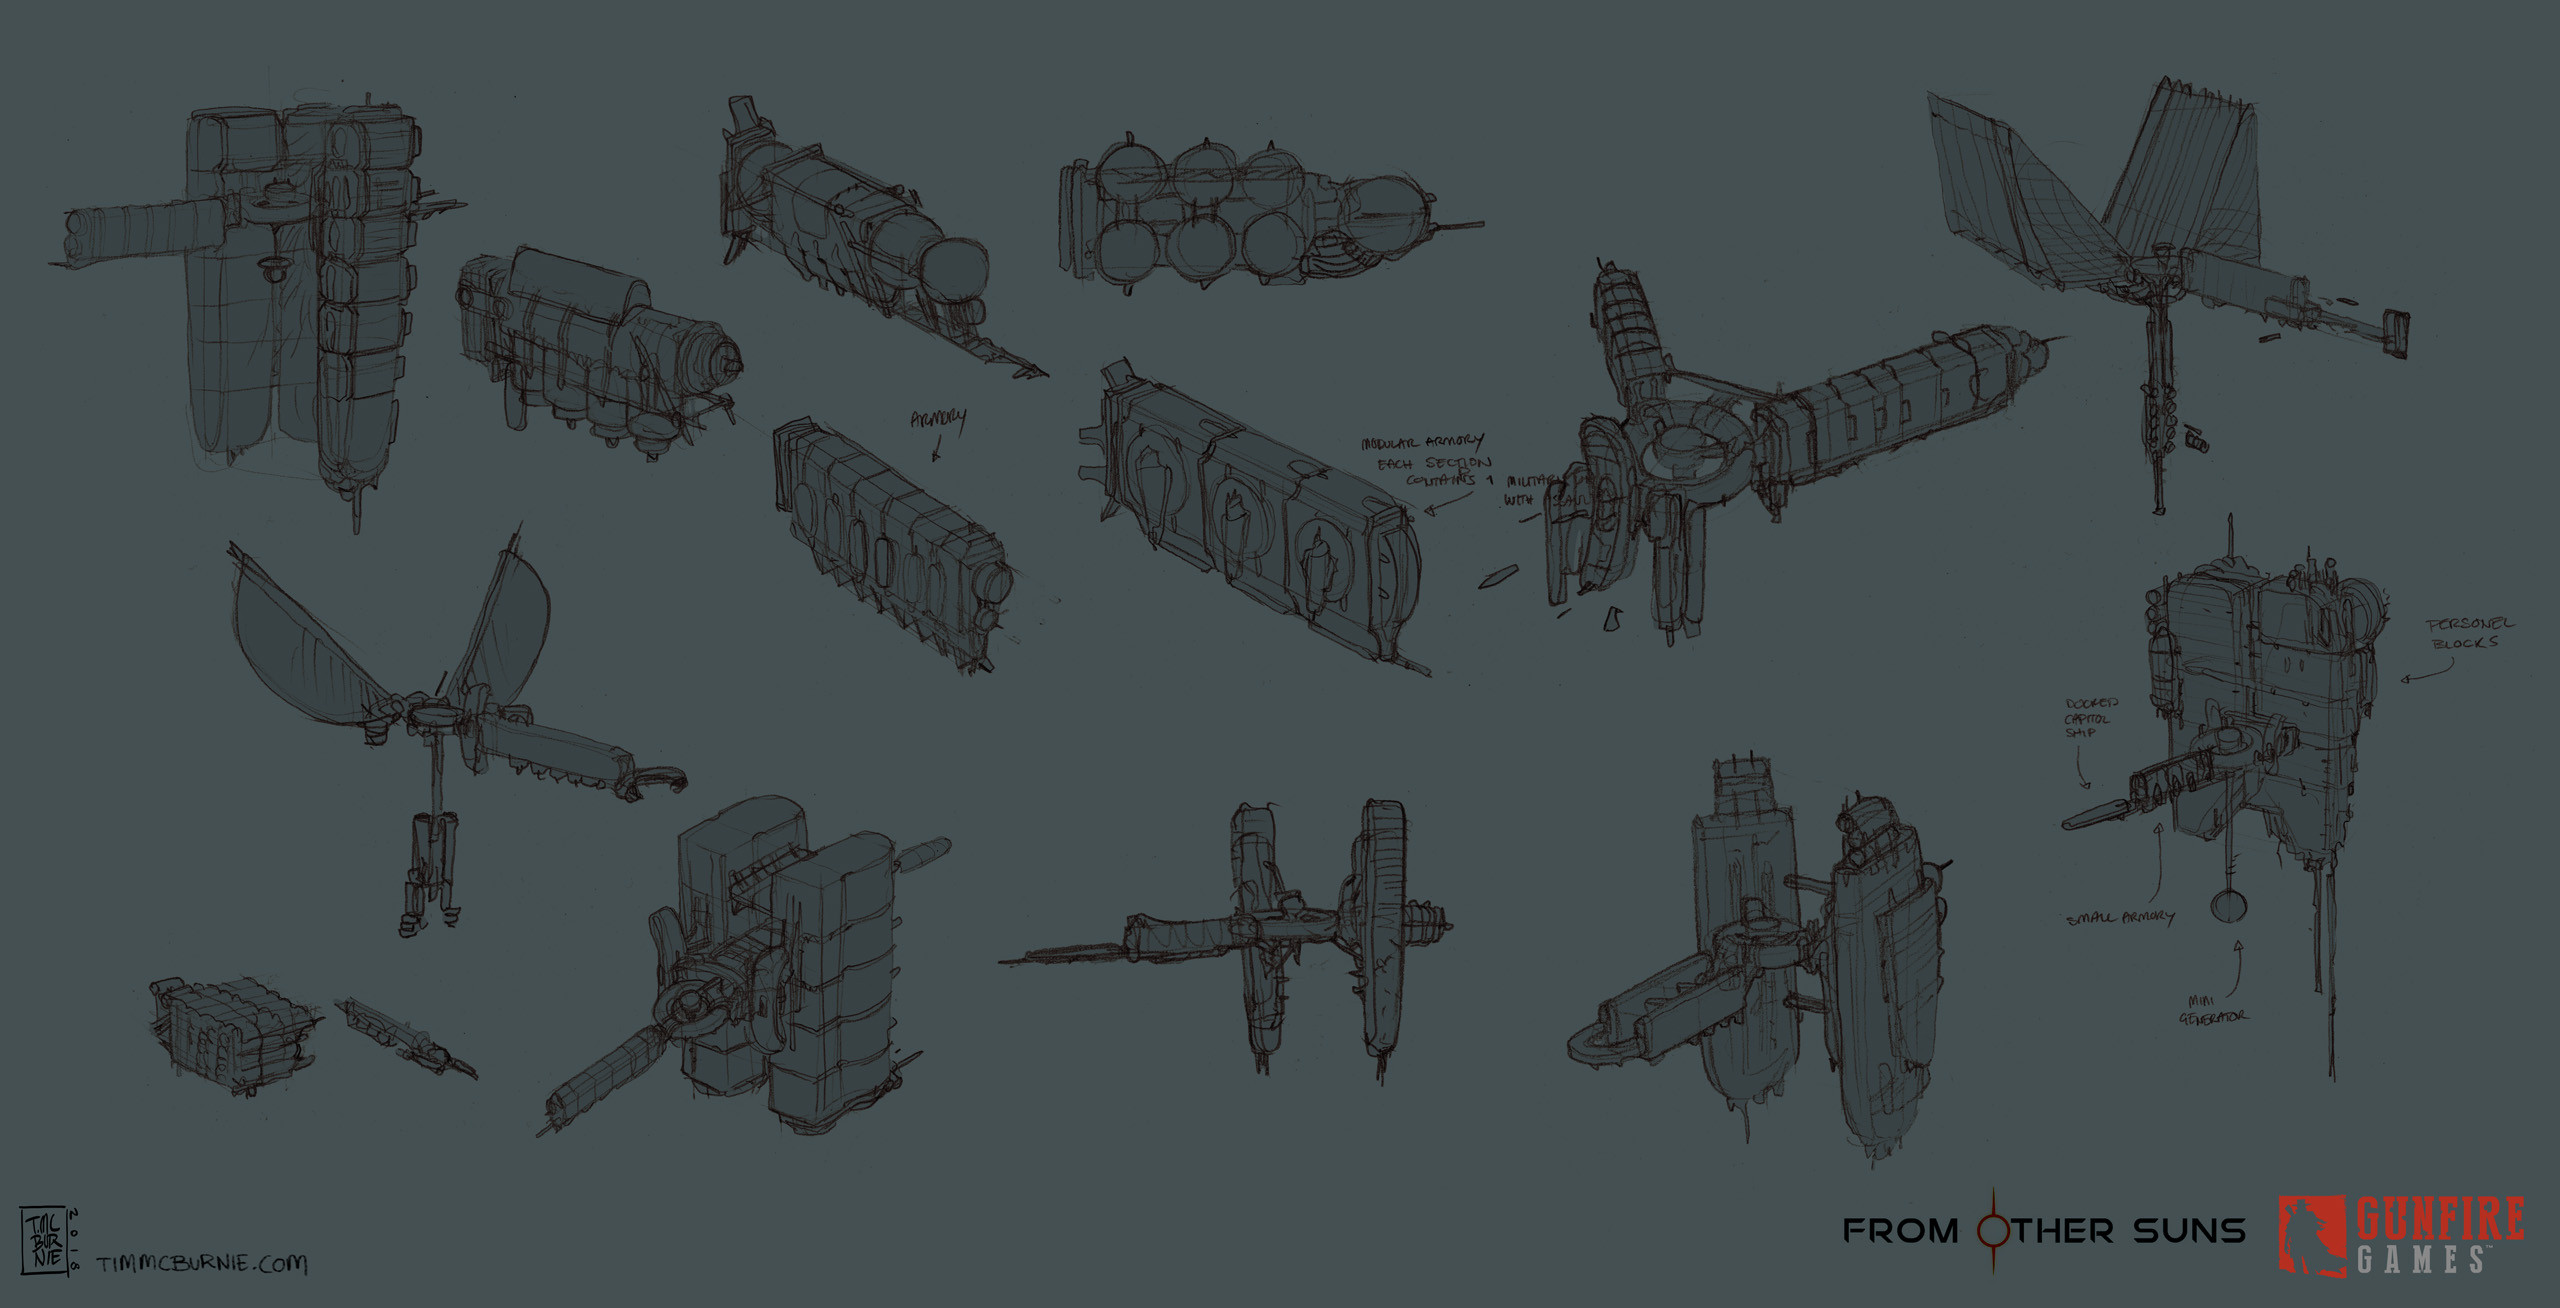 Space Station initial sketches